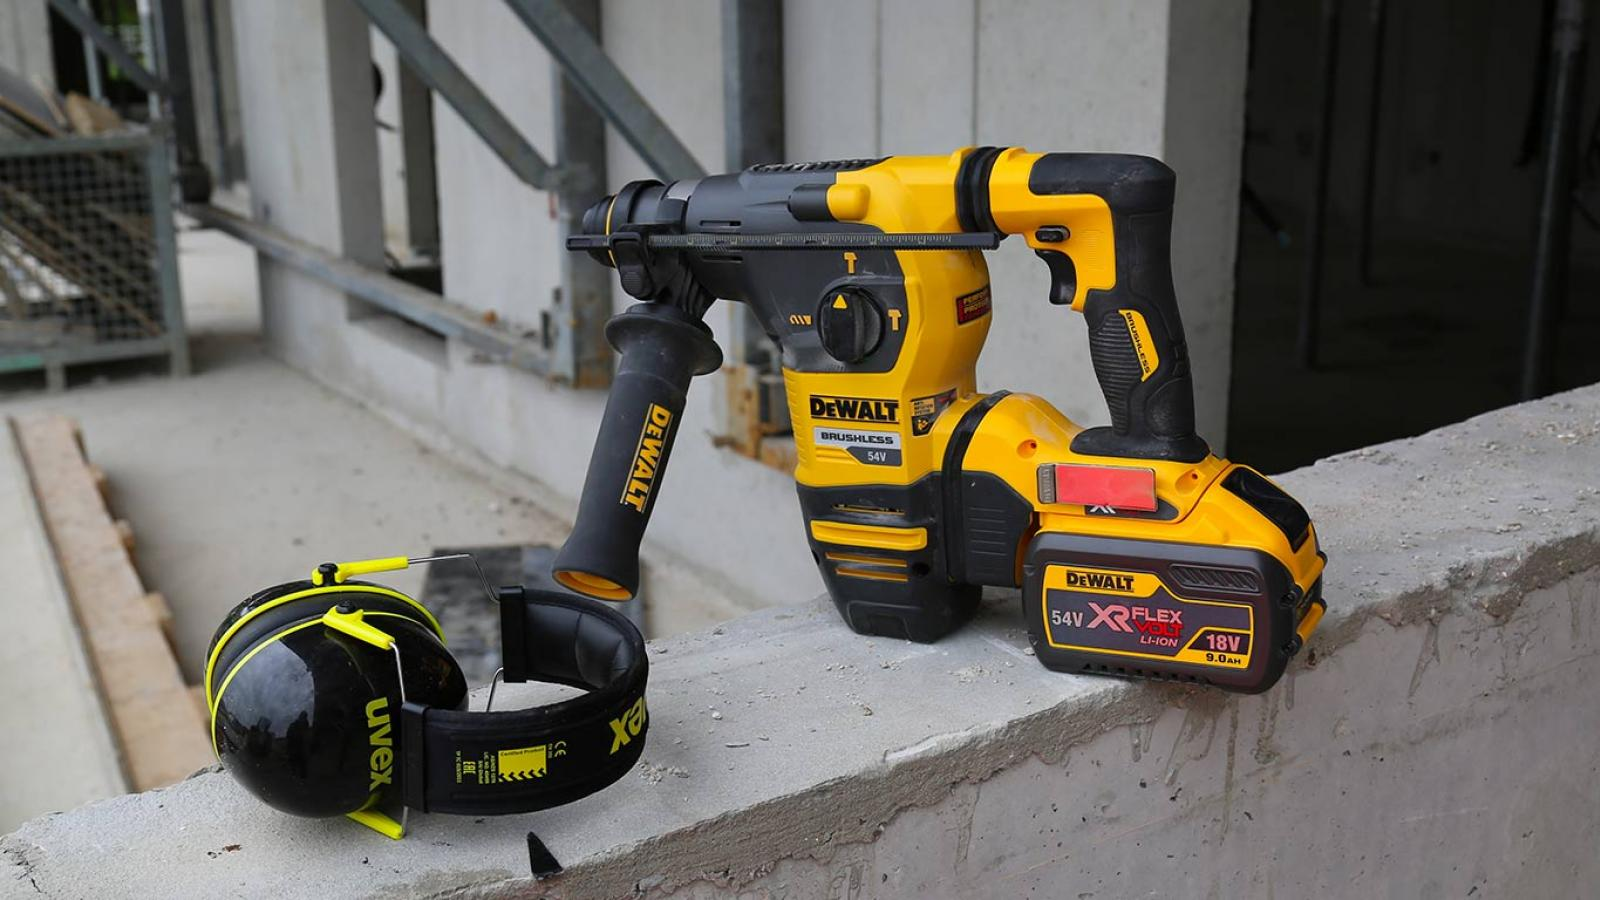 Marteau perforateur-burineur DEWALT DCH333 54V XR FLEXVOLT